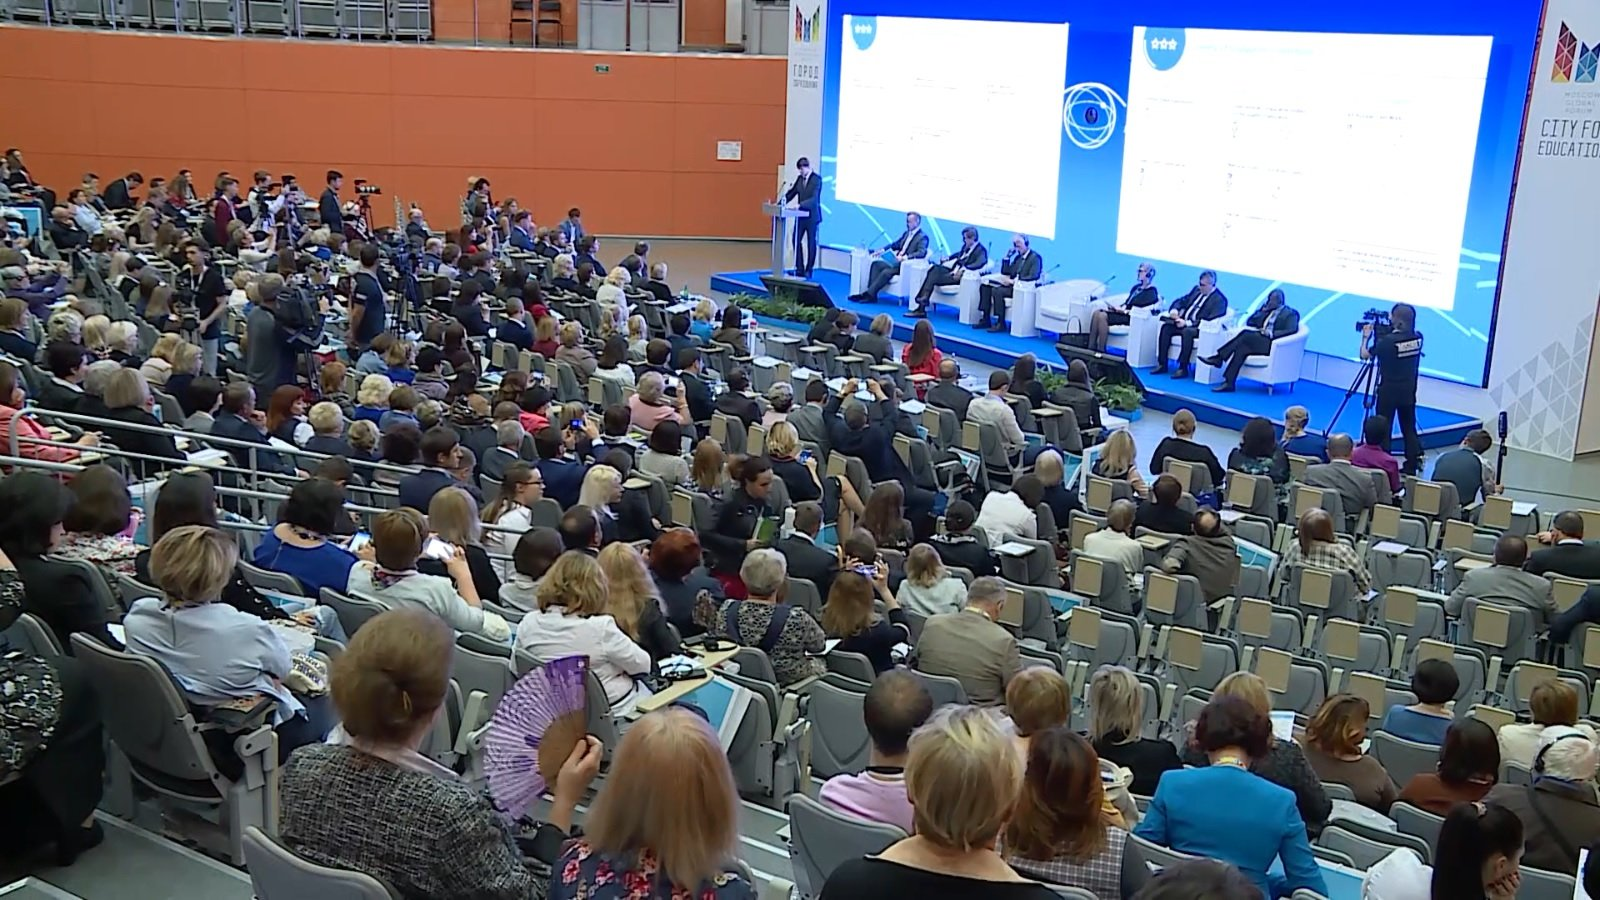 """IV International Conference """"Education in the Modern World: Challenges, Assessment, Decisions"""" will be held in Moscow"""